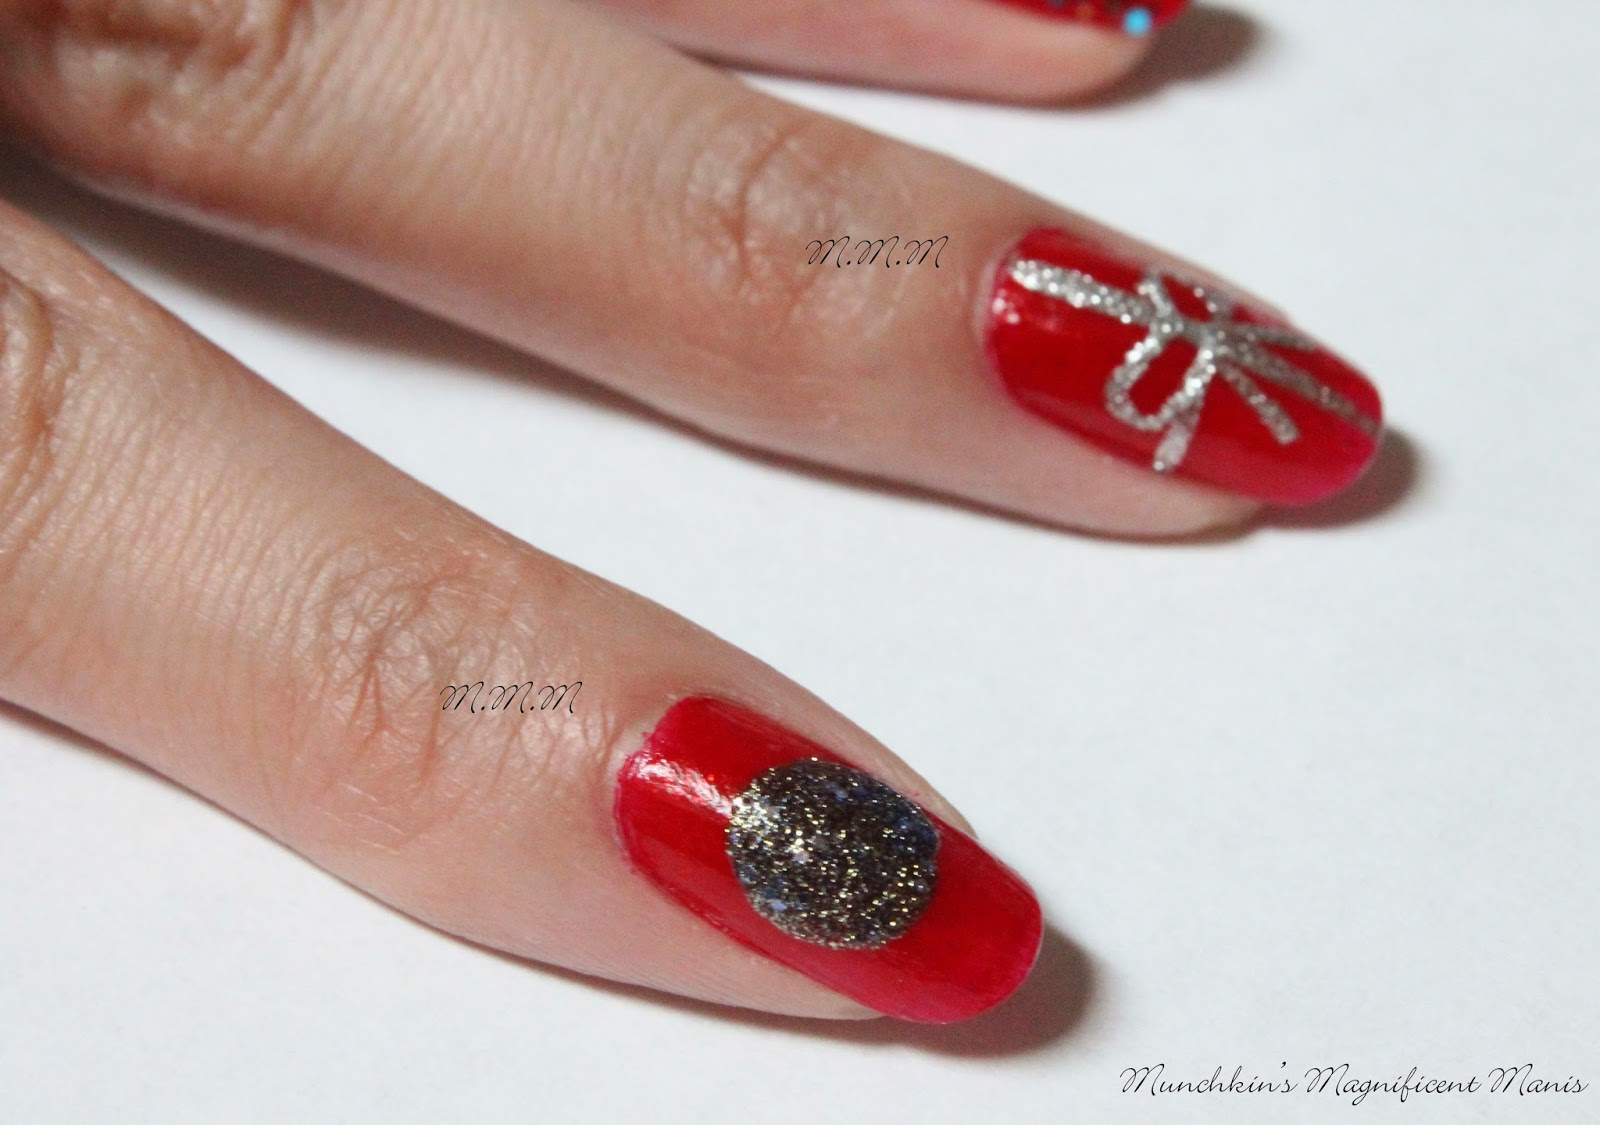 Munchkin S Magnificent Manis Merry Christmas Happy Holiday S